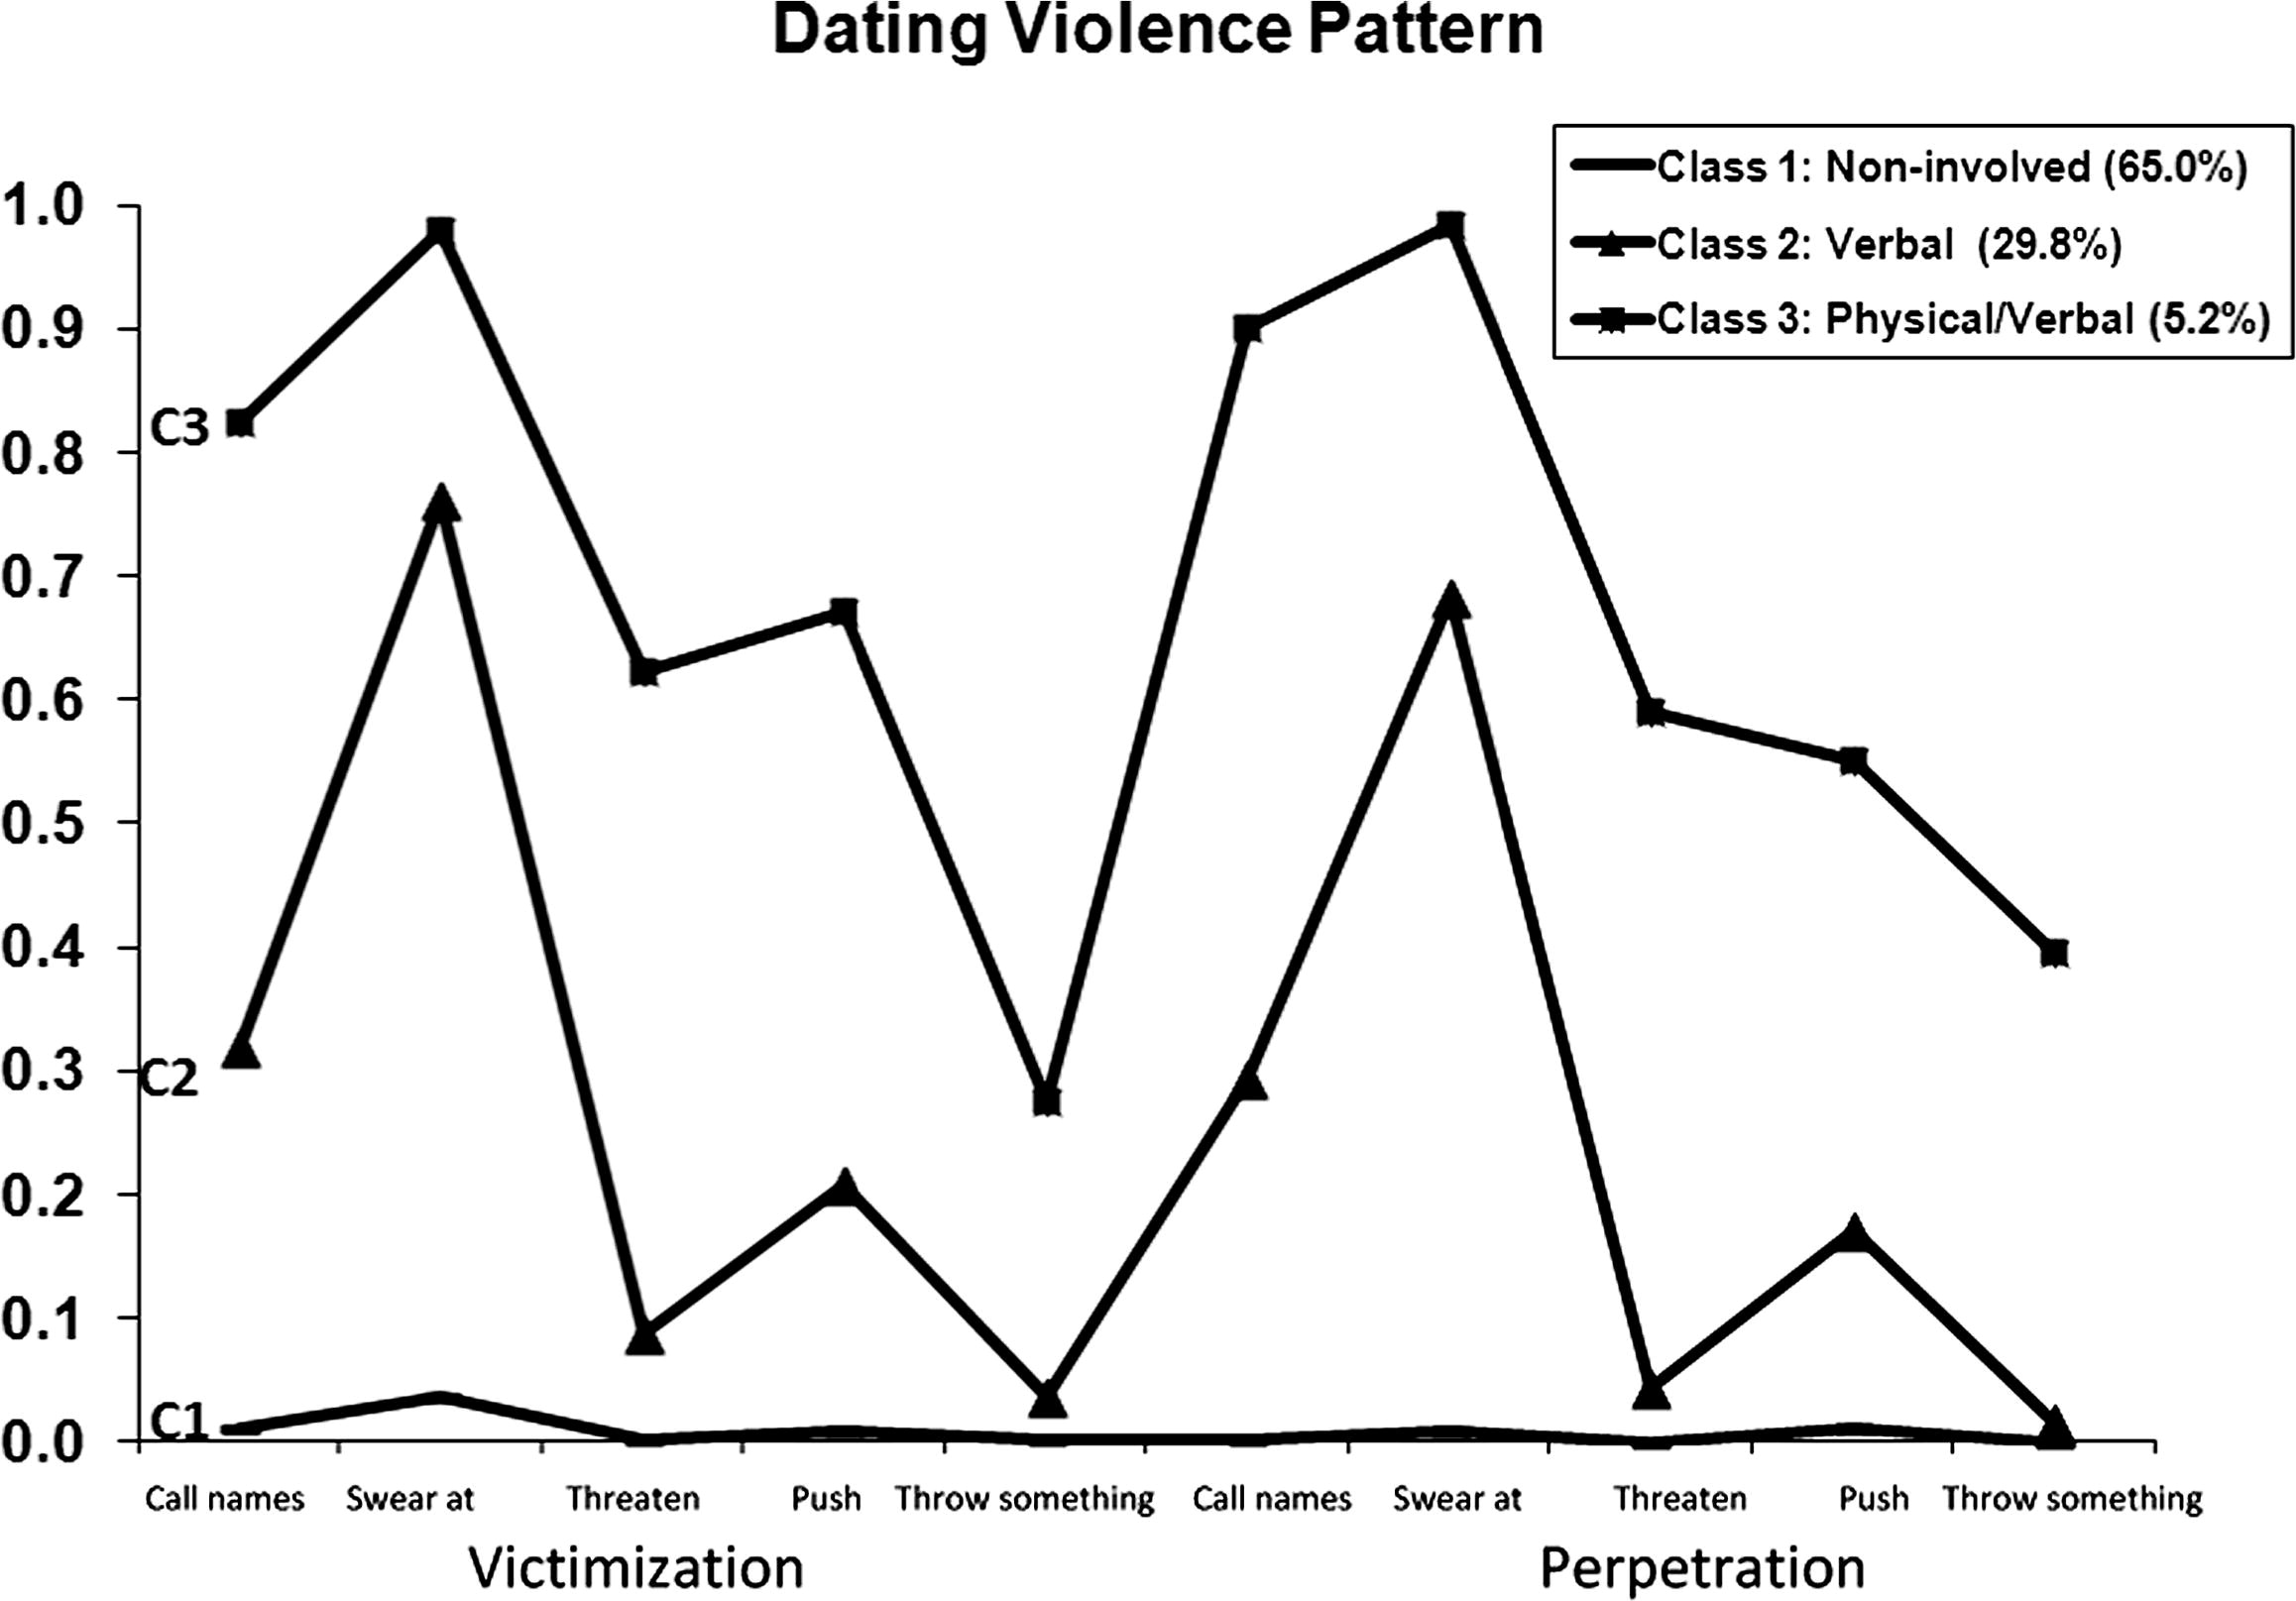 marriage after 1 year of dating: prevalence of dating violence and victimization